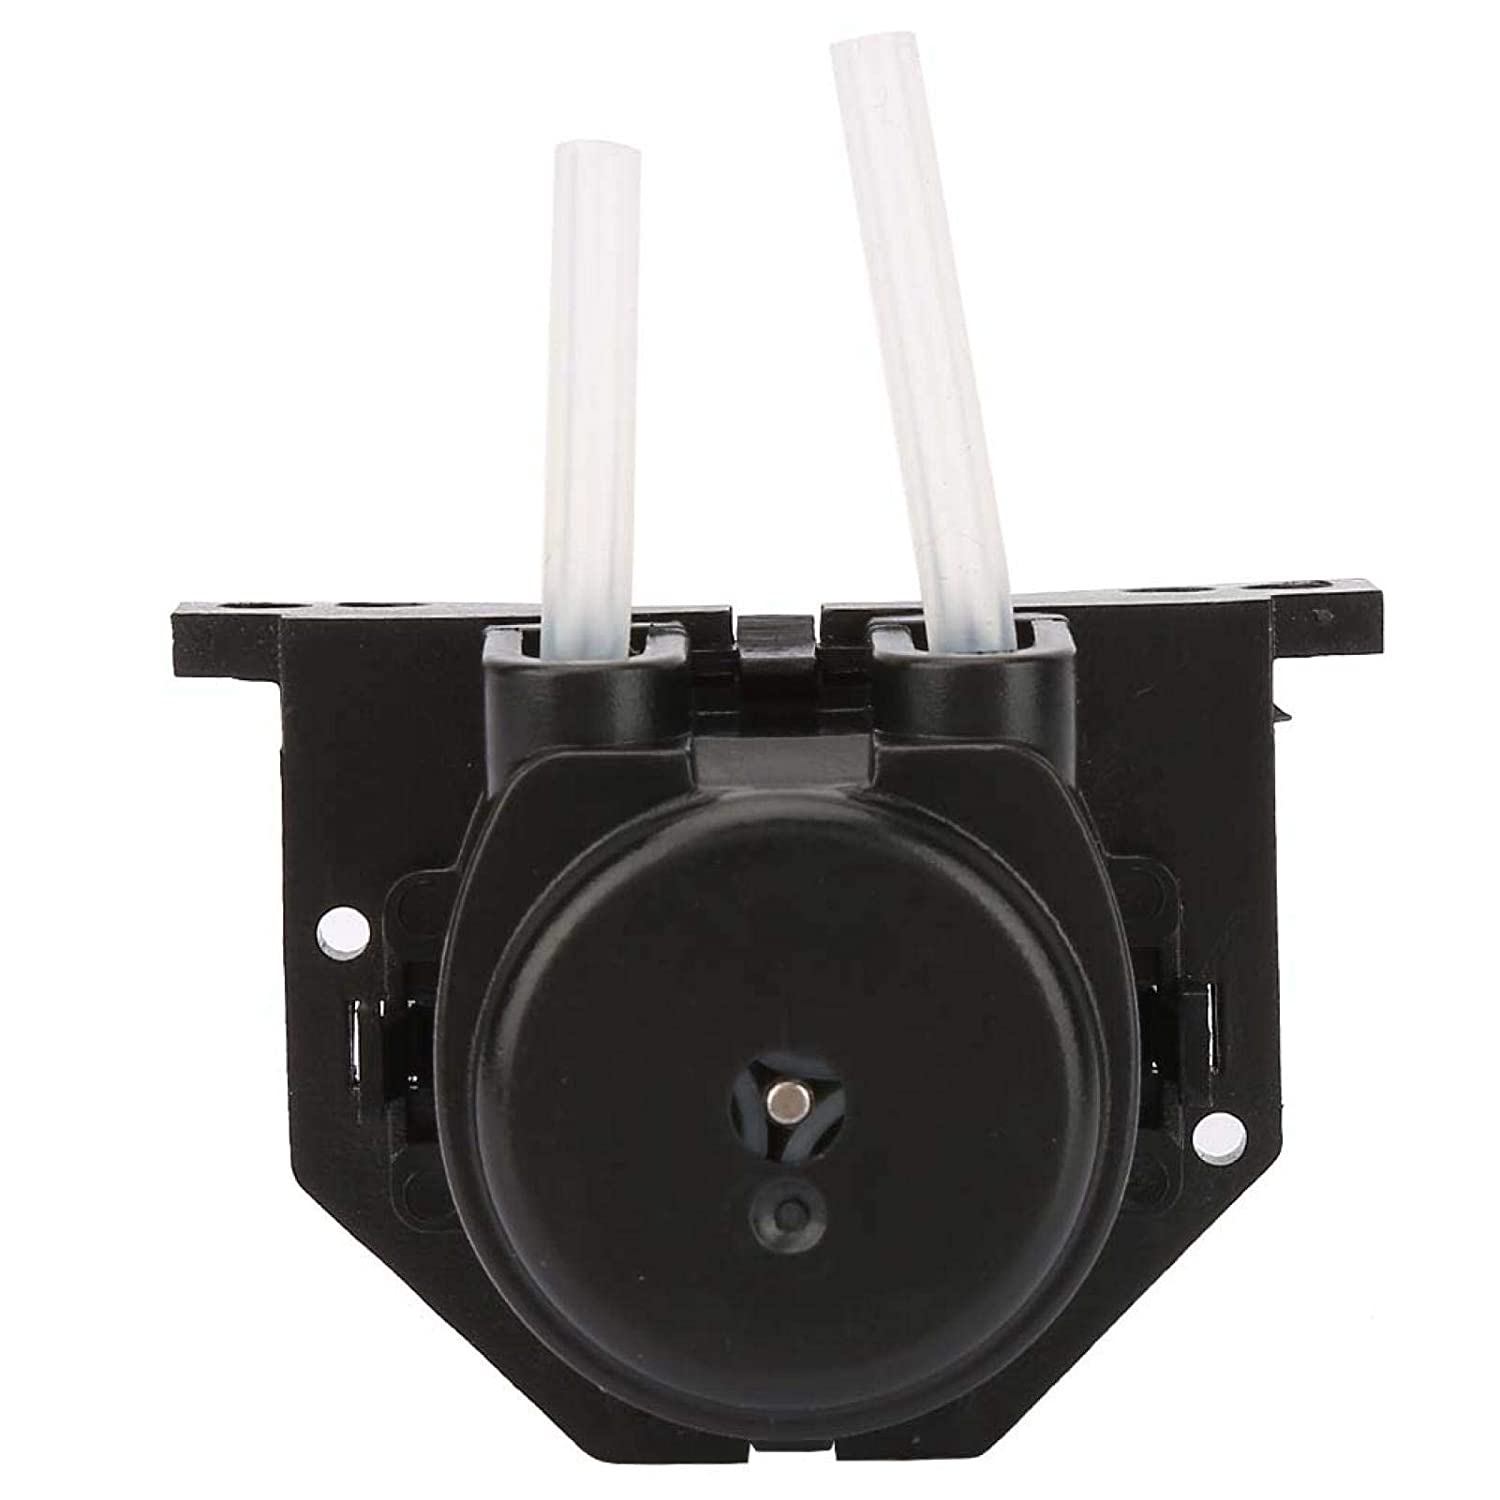 for Stable Delivery Control Flow Direction for Biochemical Analysis 6V Right Angle Black Peristaltic Pump Right Angle Black Self-Priming Pump Miniature 6V